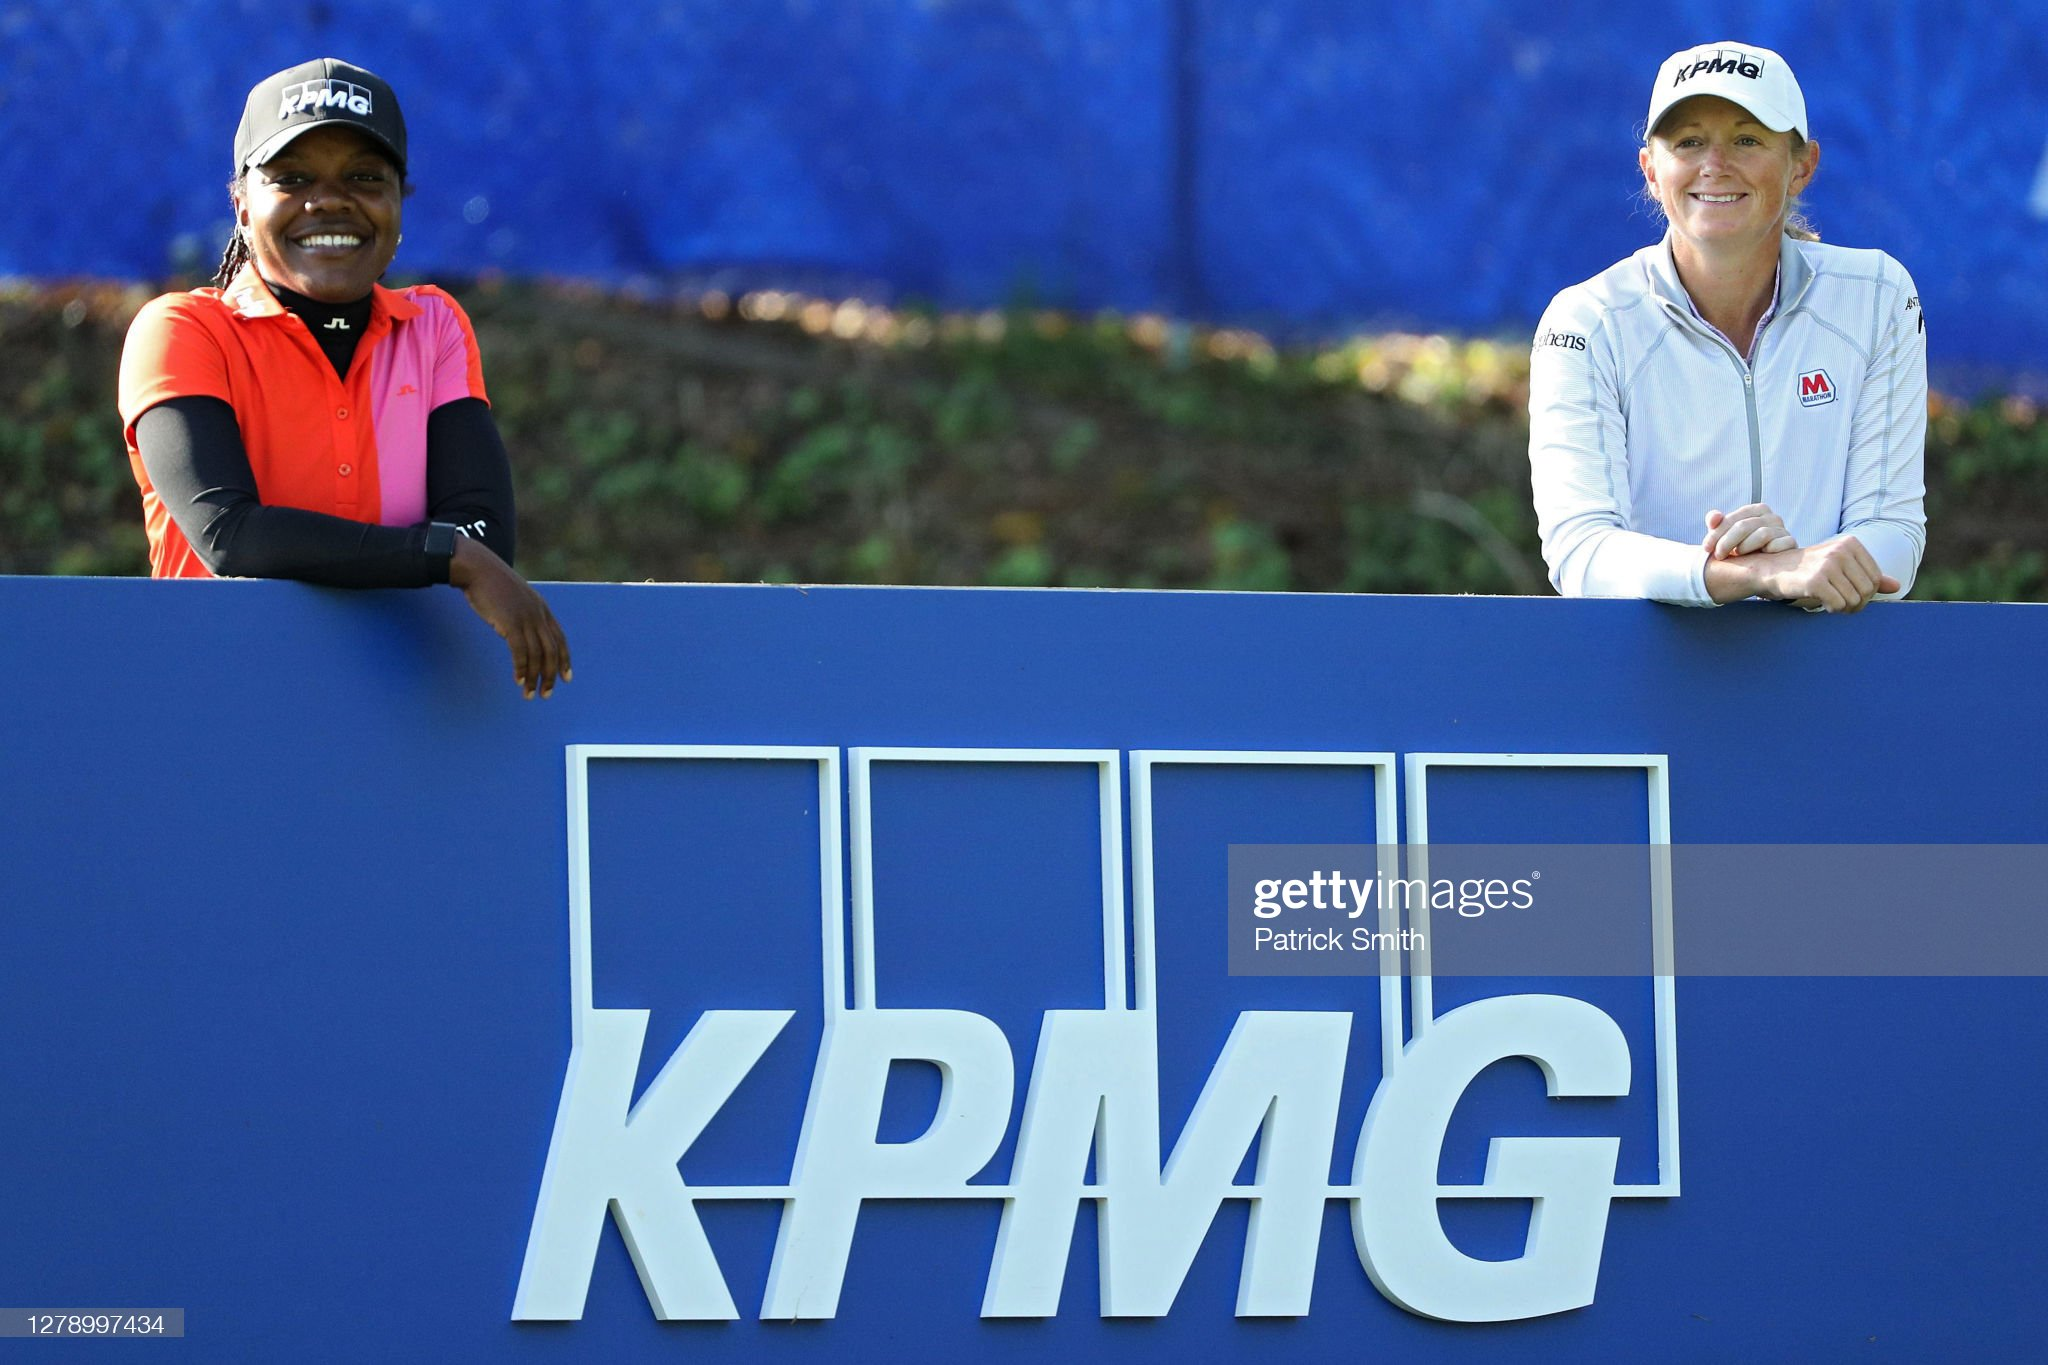 https://media.gettyimages.com/photos/mariah-stackhouse-of-the-united-states-and-stacy-lewis-pose-for-a-on-picture-id1278997434?s=2048x2048